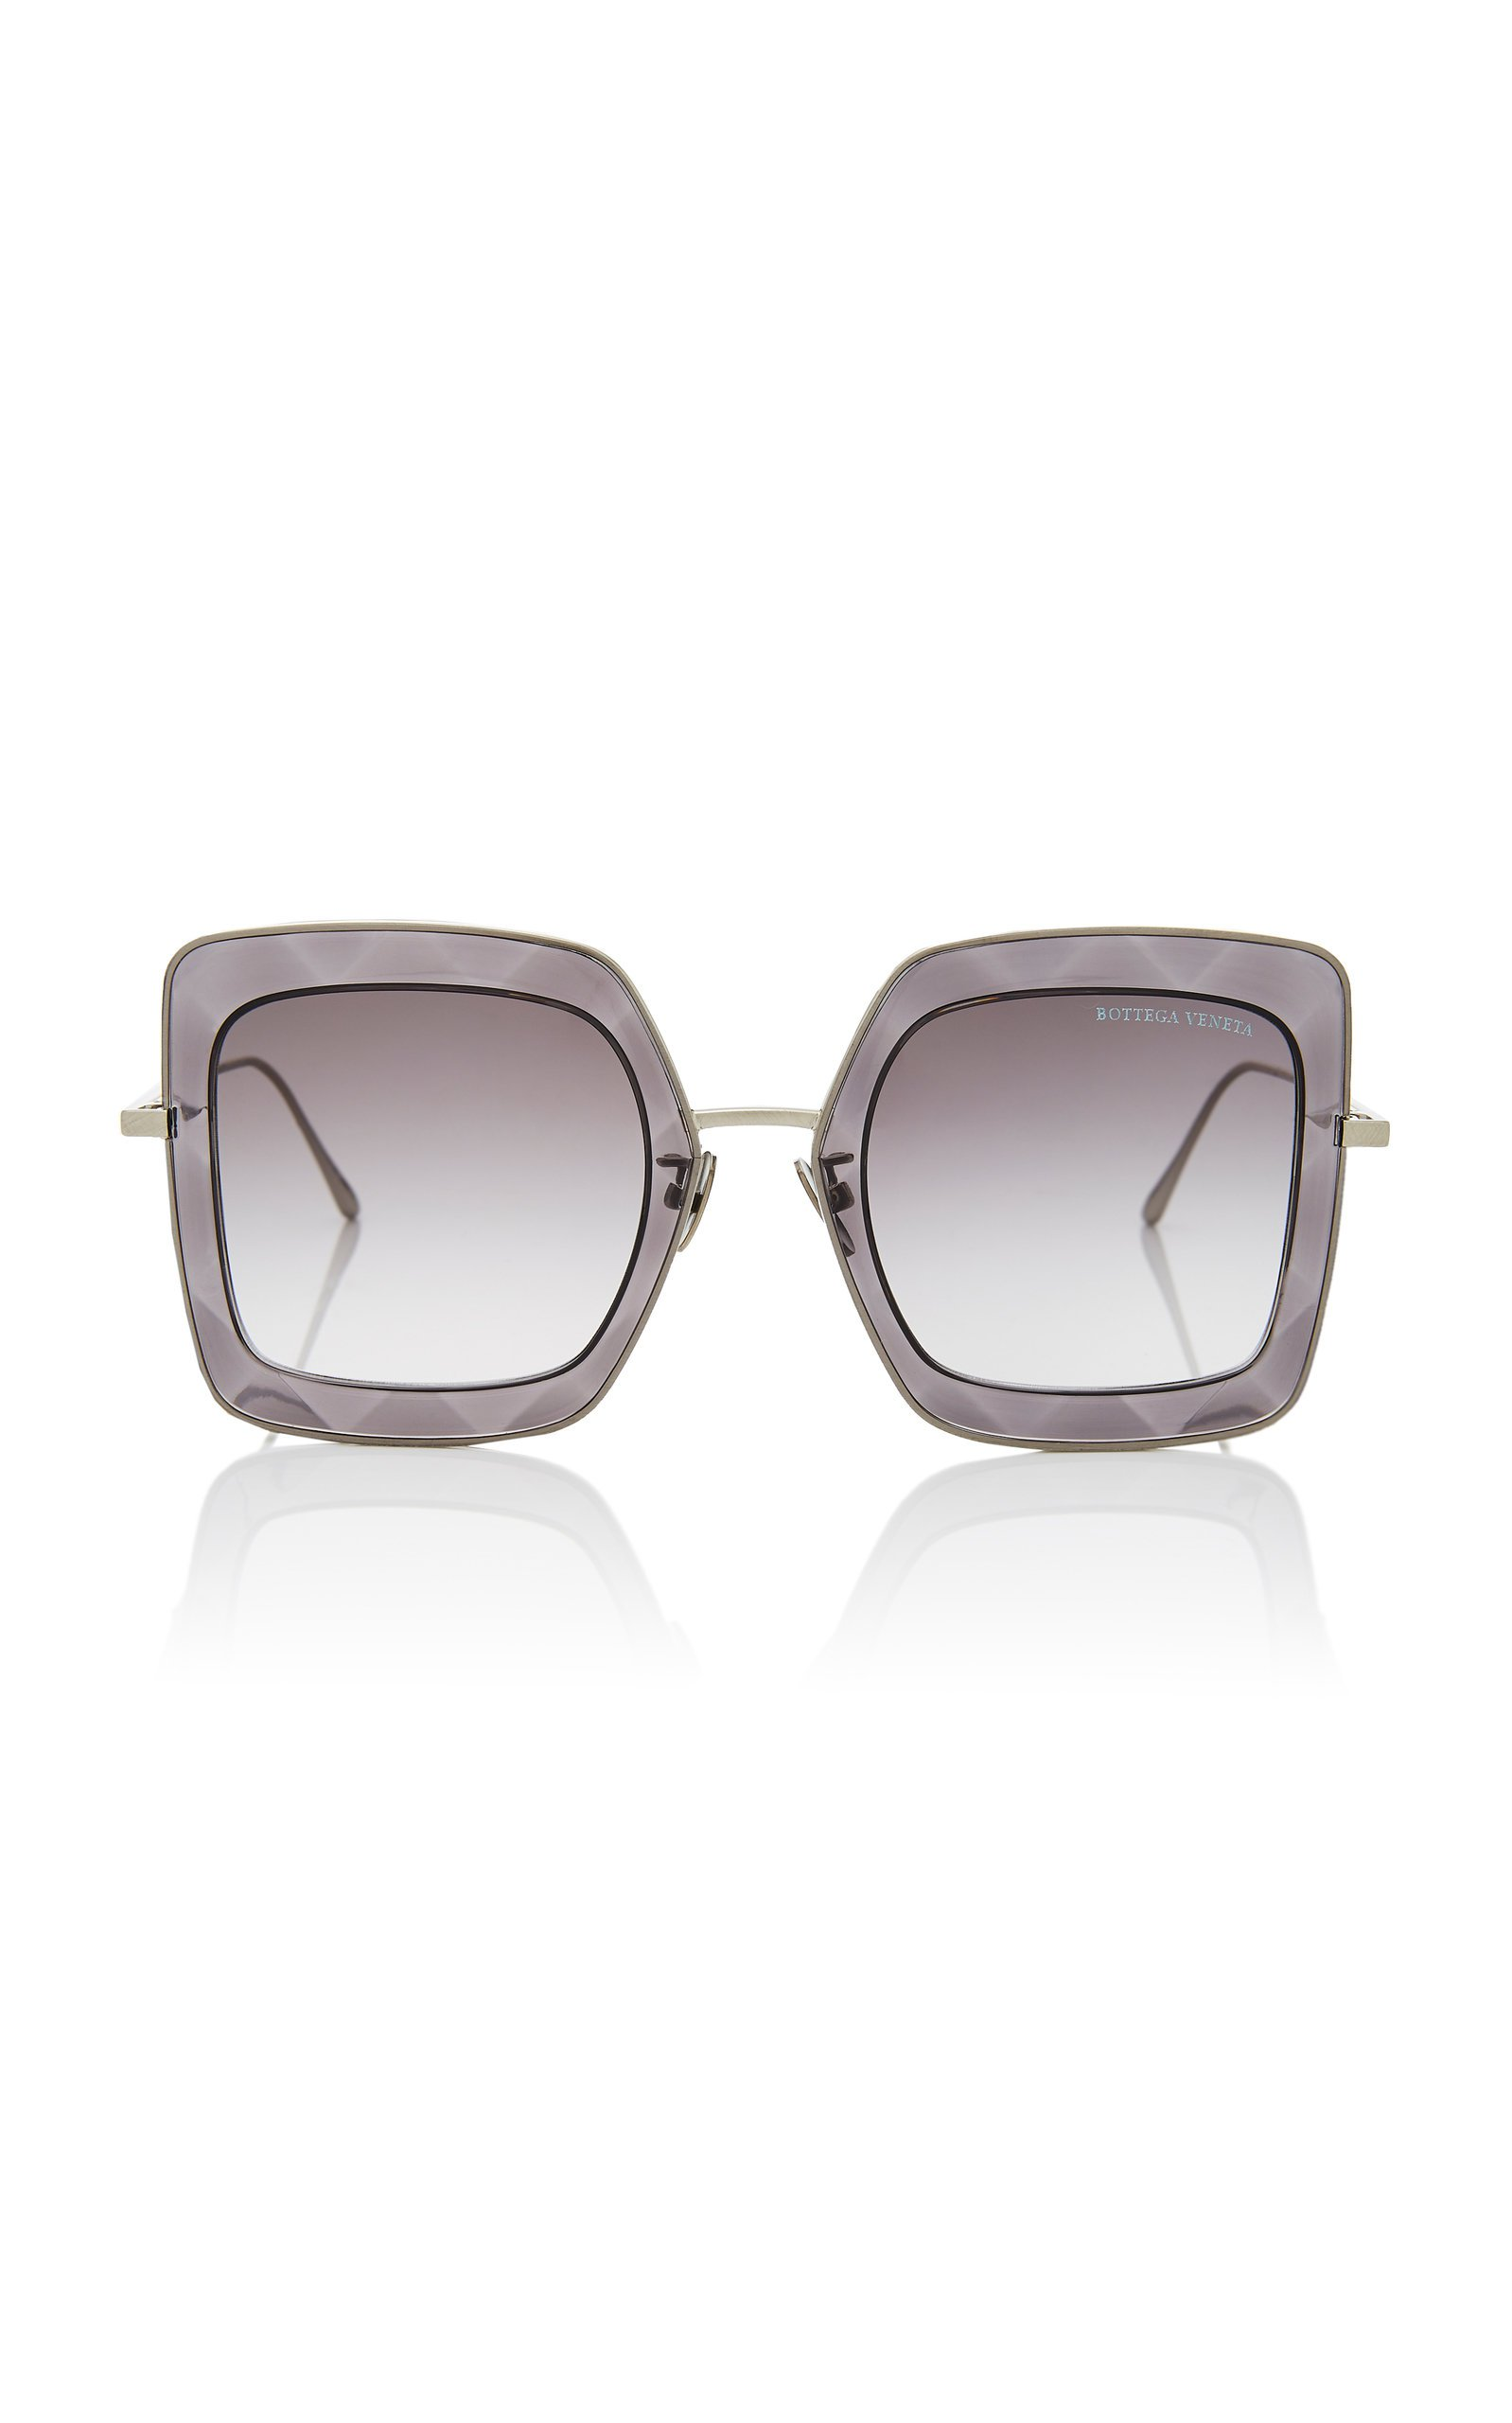 Bottega Veneta Oversized Square Sunglasses